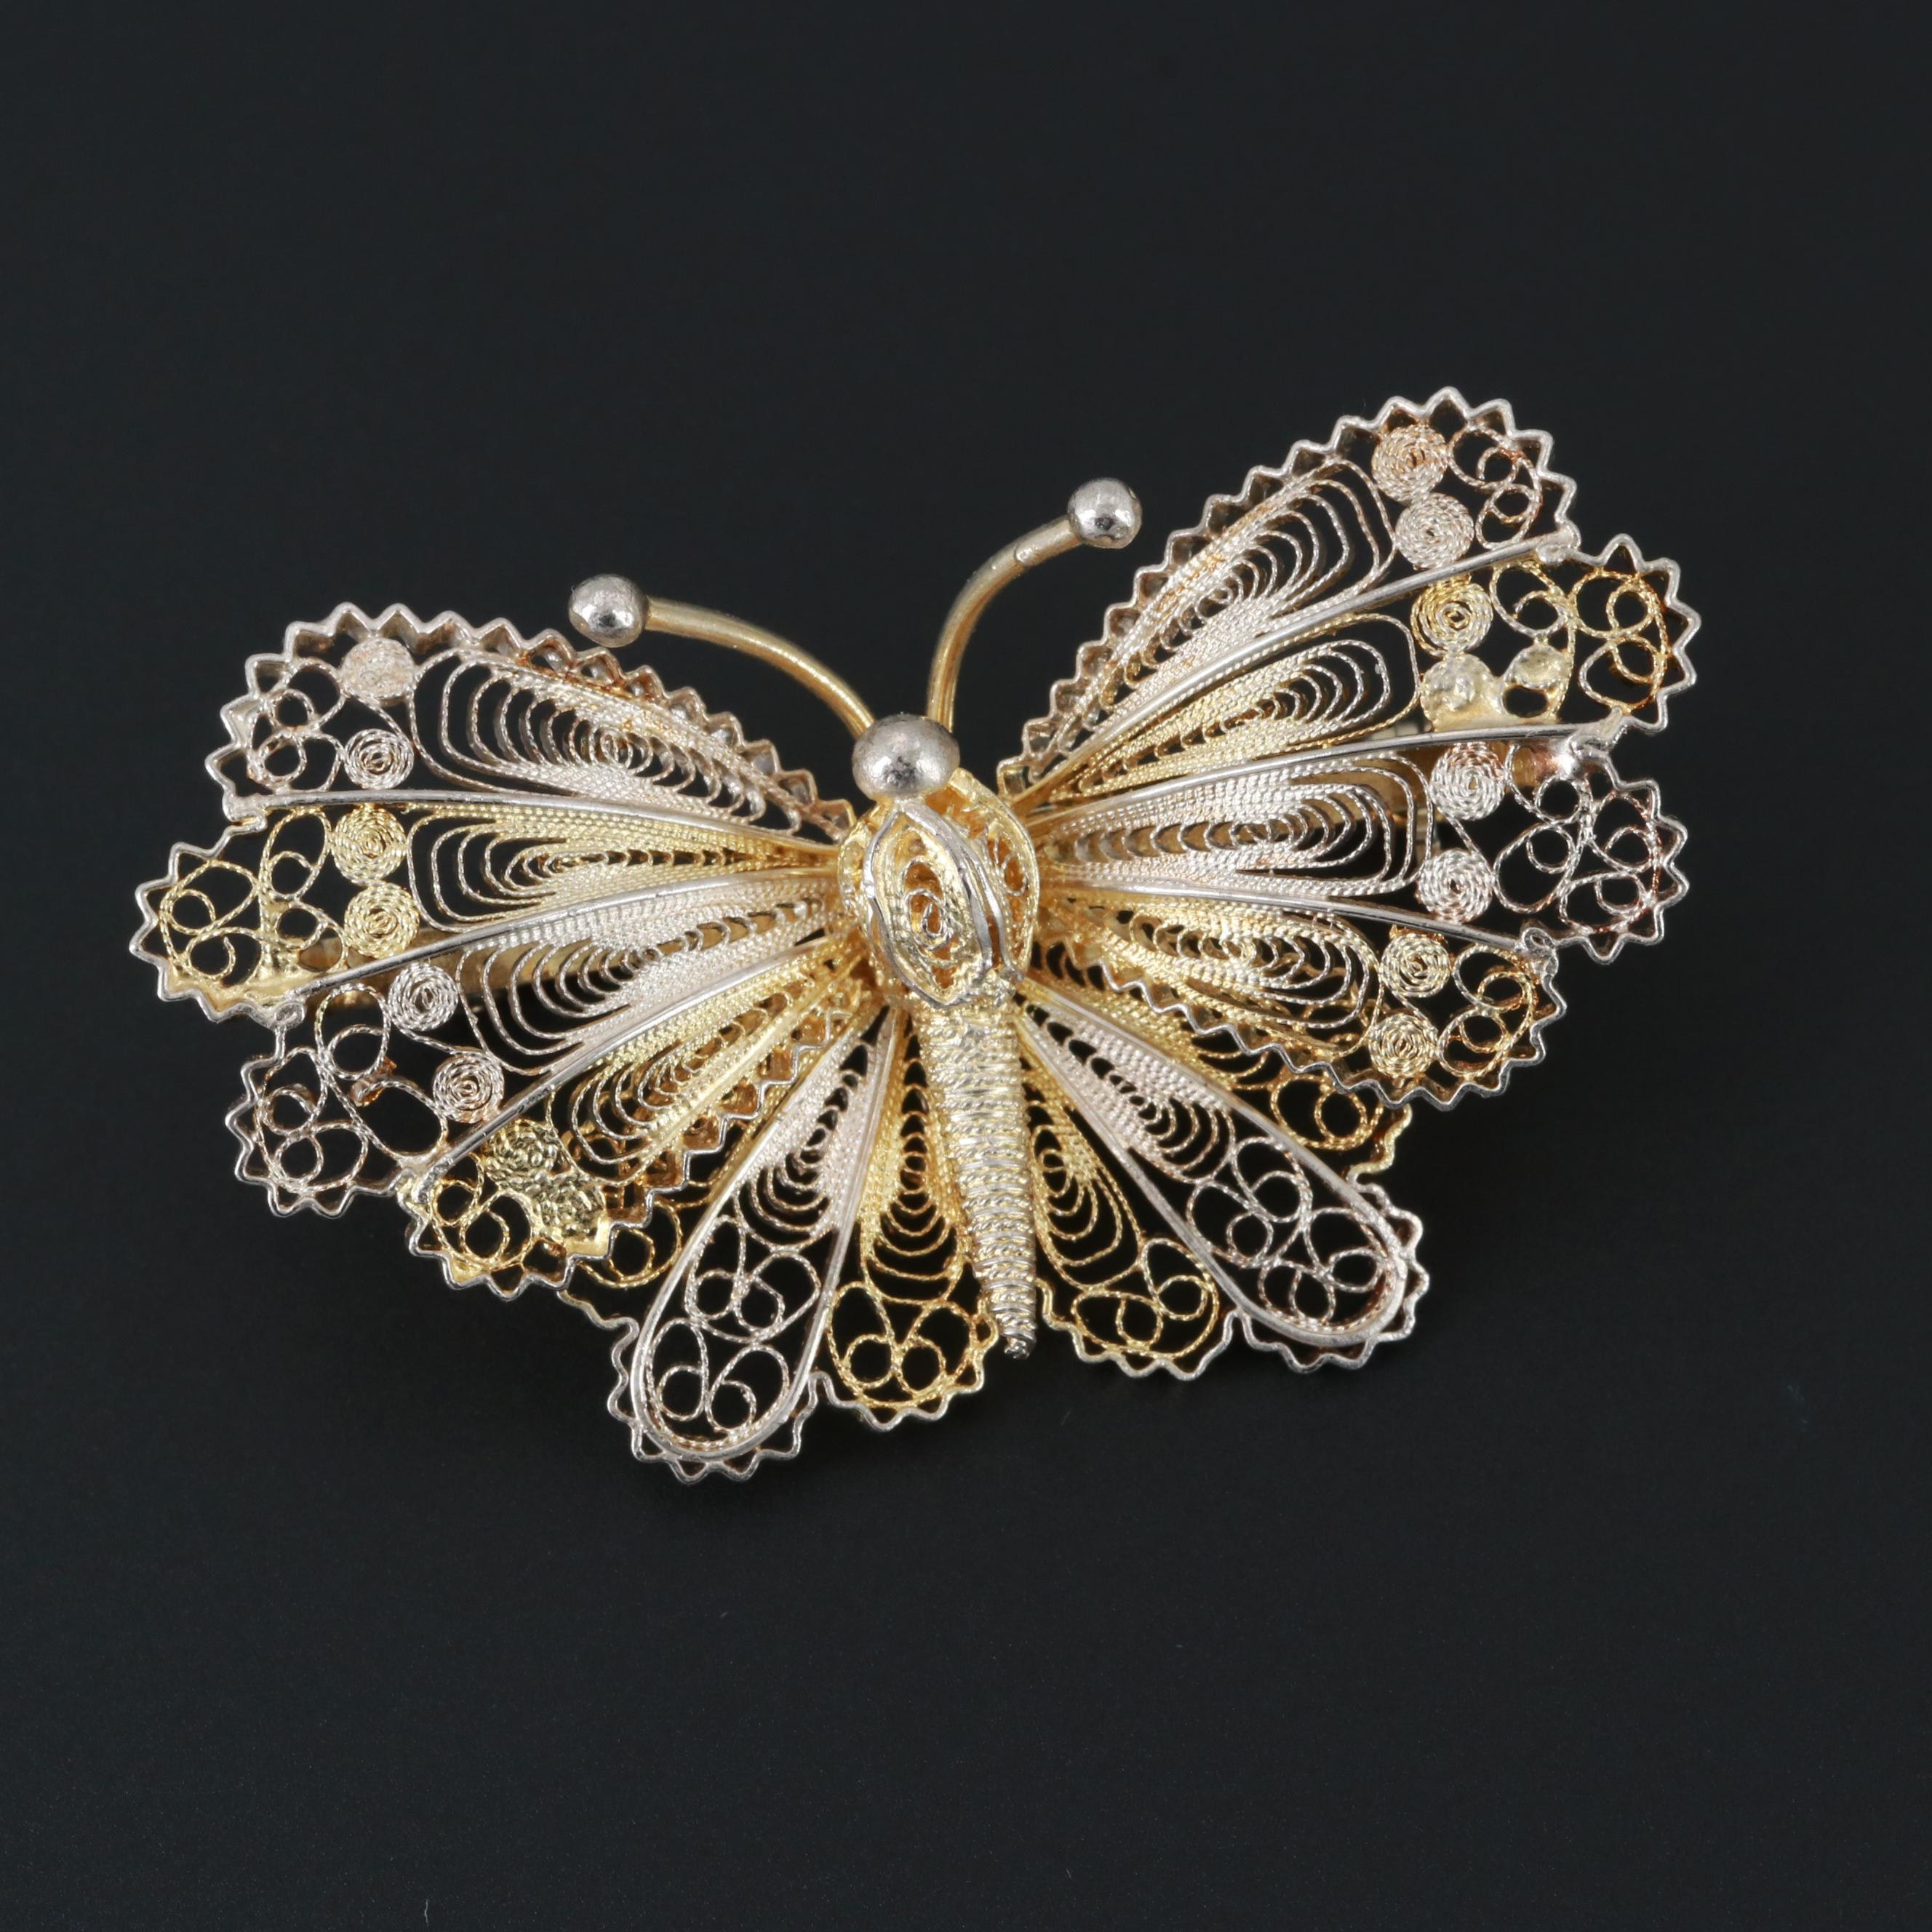 Sterling Silver Filigree Butterfly Brooch with Gold Wash Accents